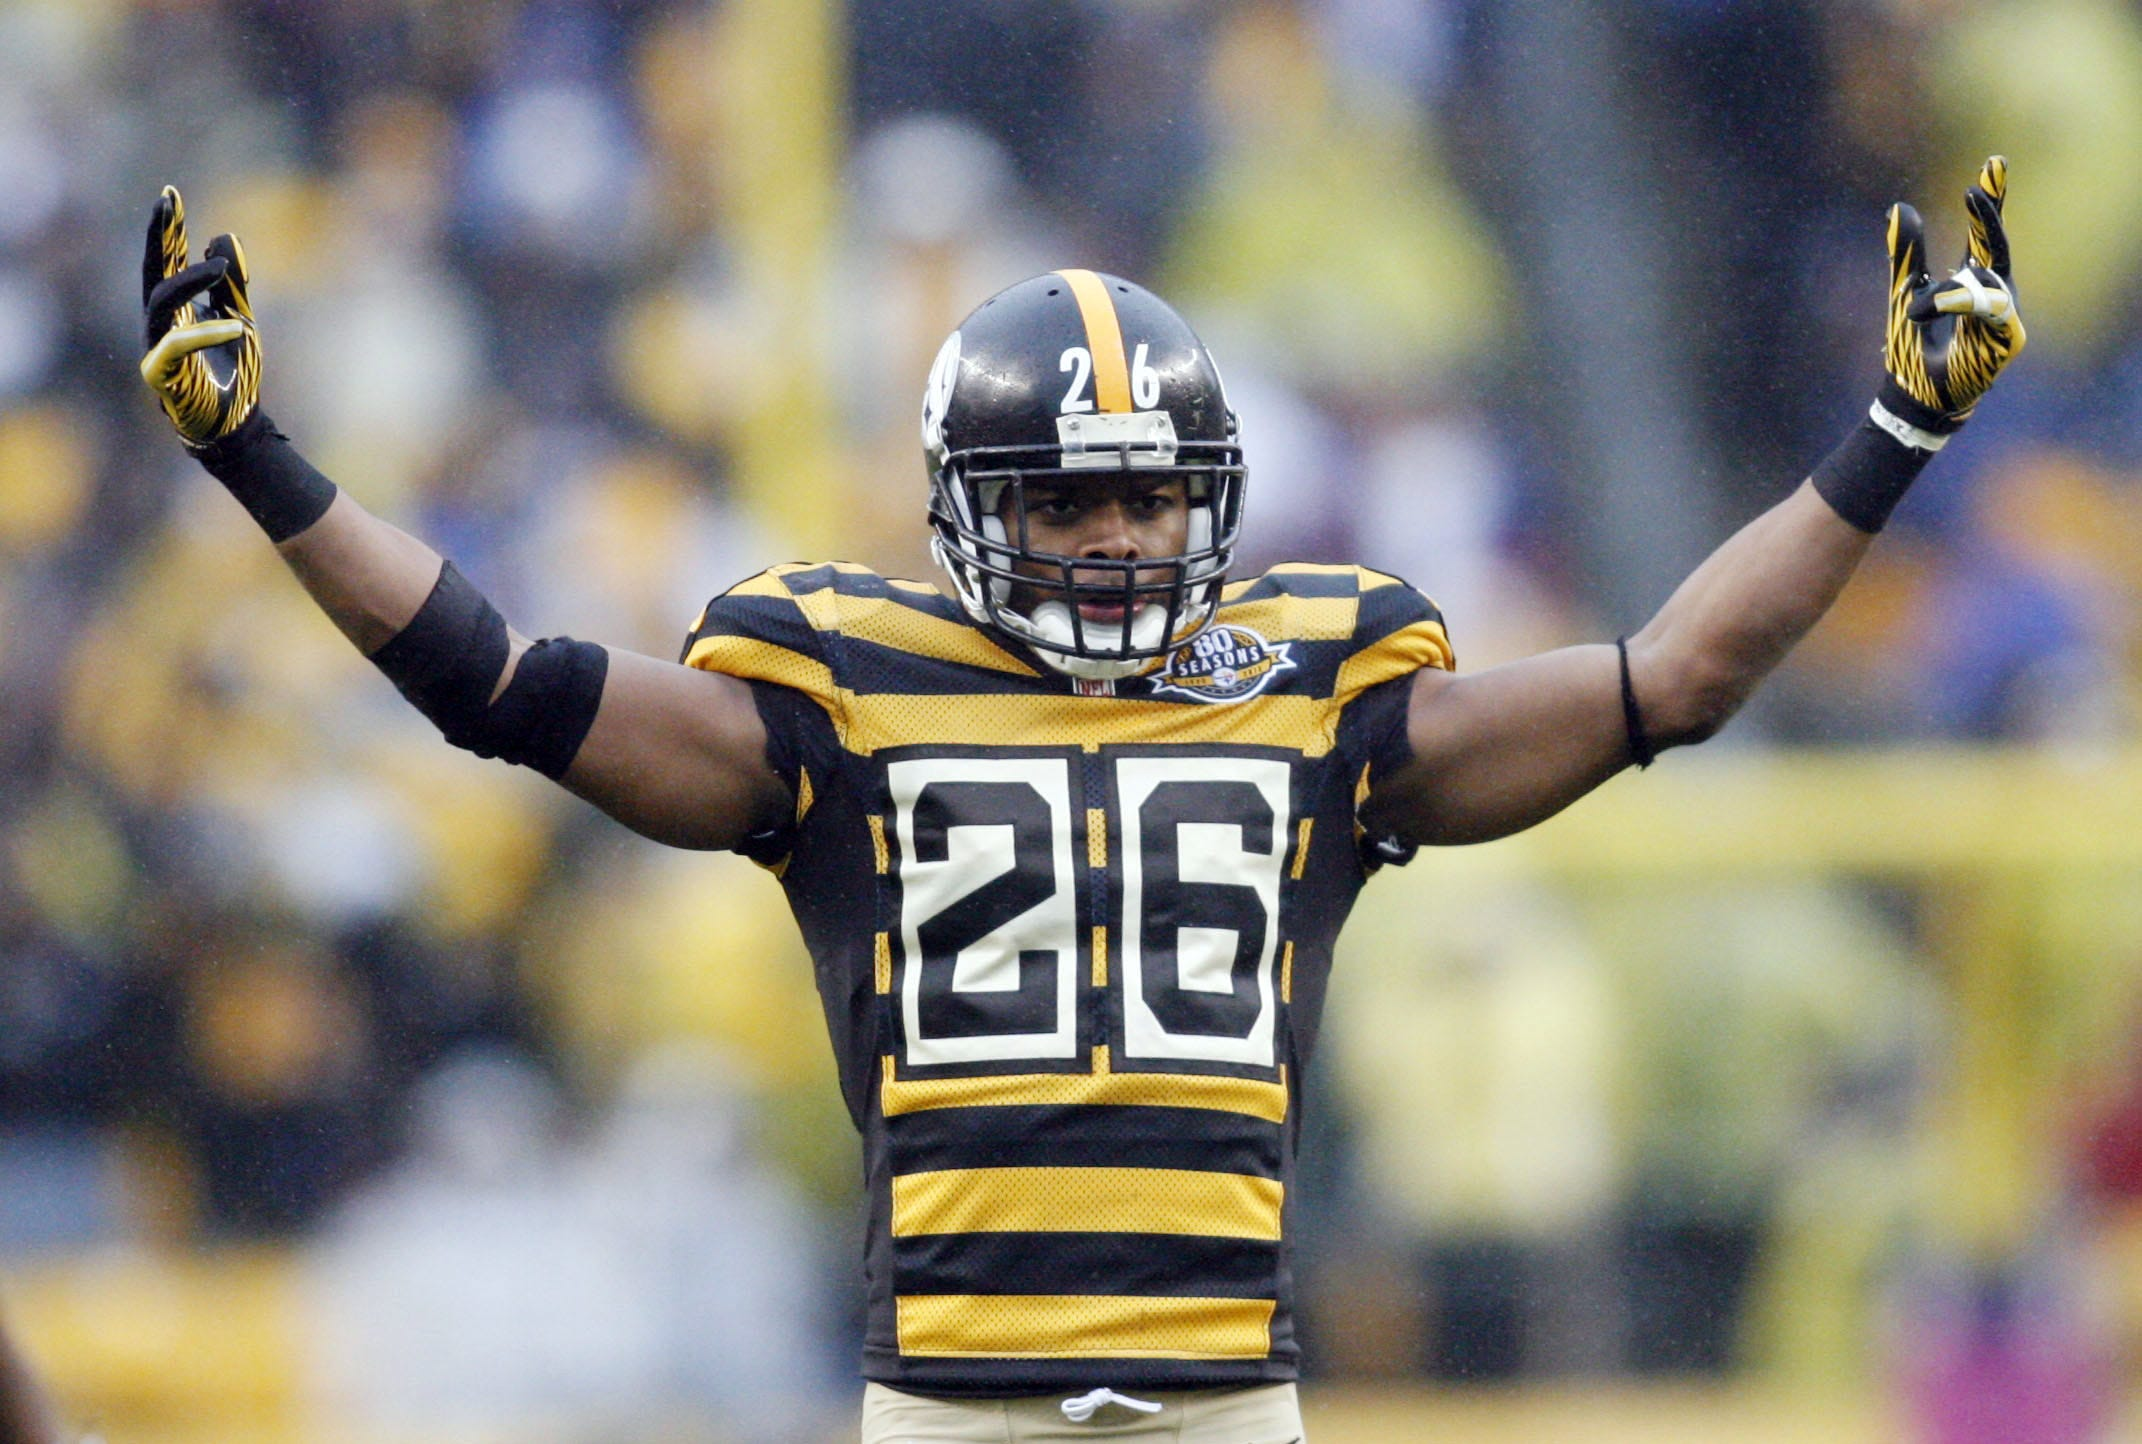 Steelers unveil new throwback uniforms based on '70s Steel Curtain teams